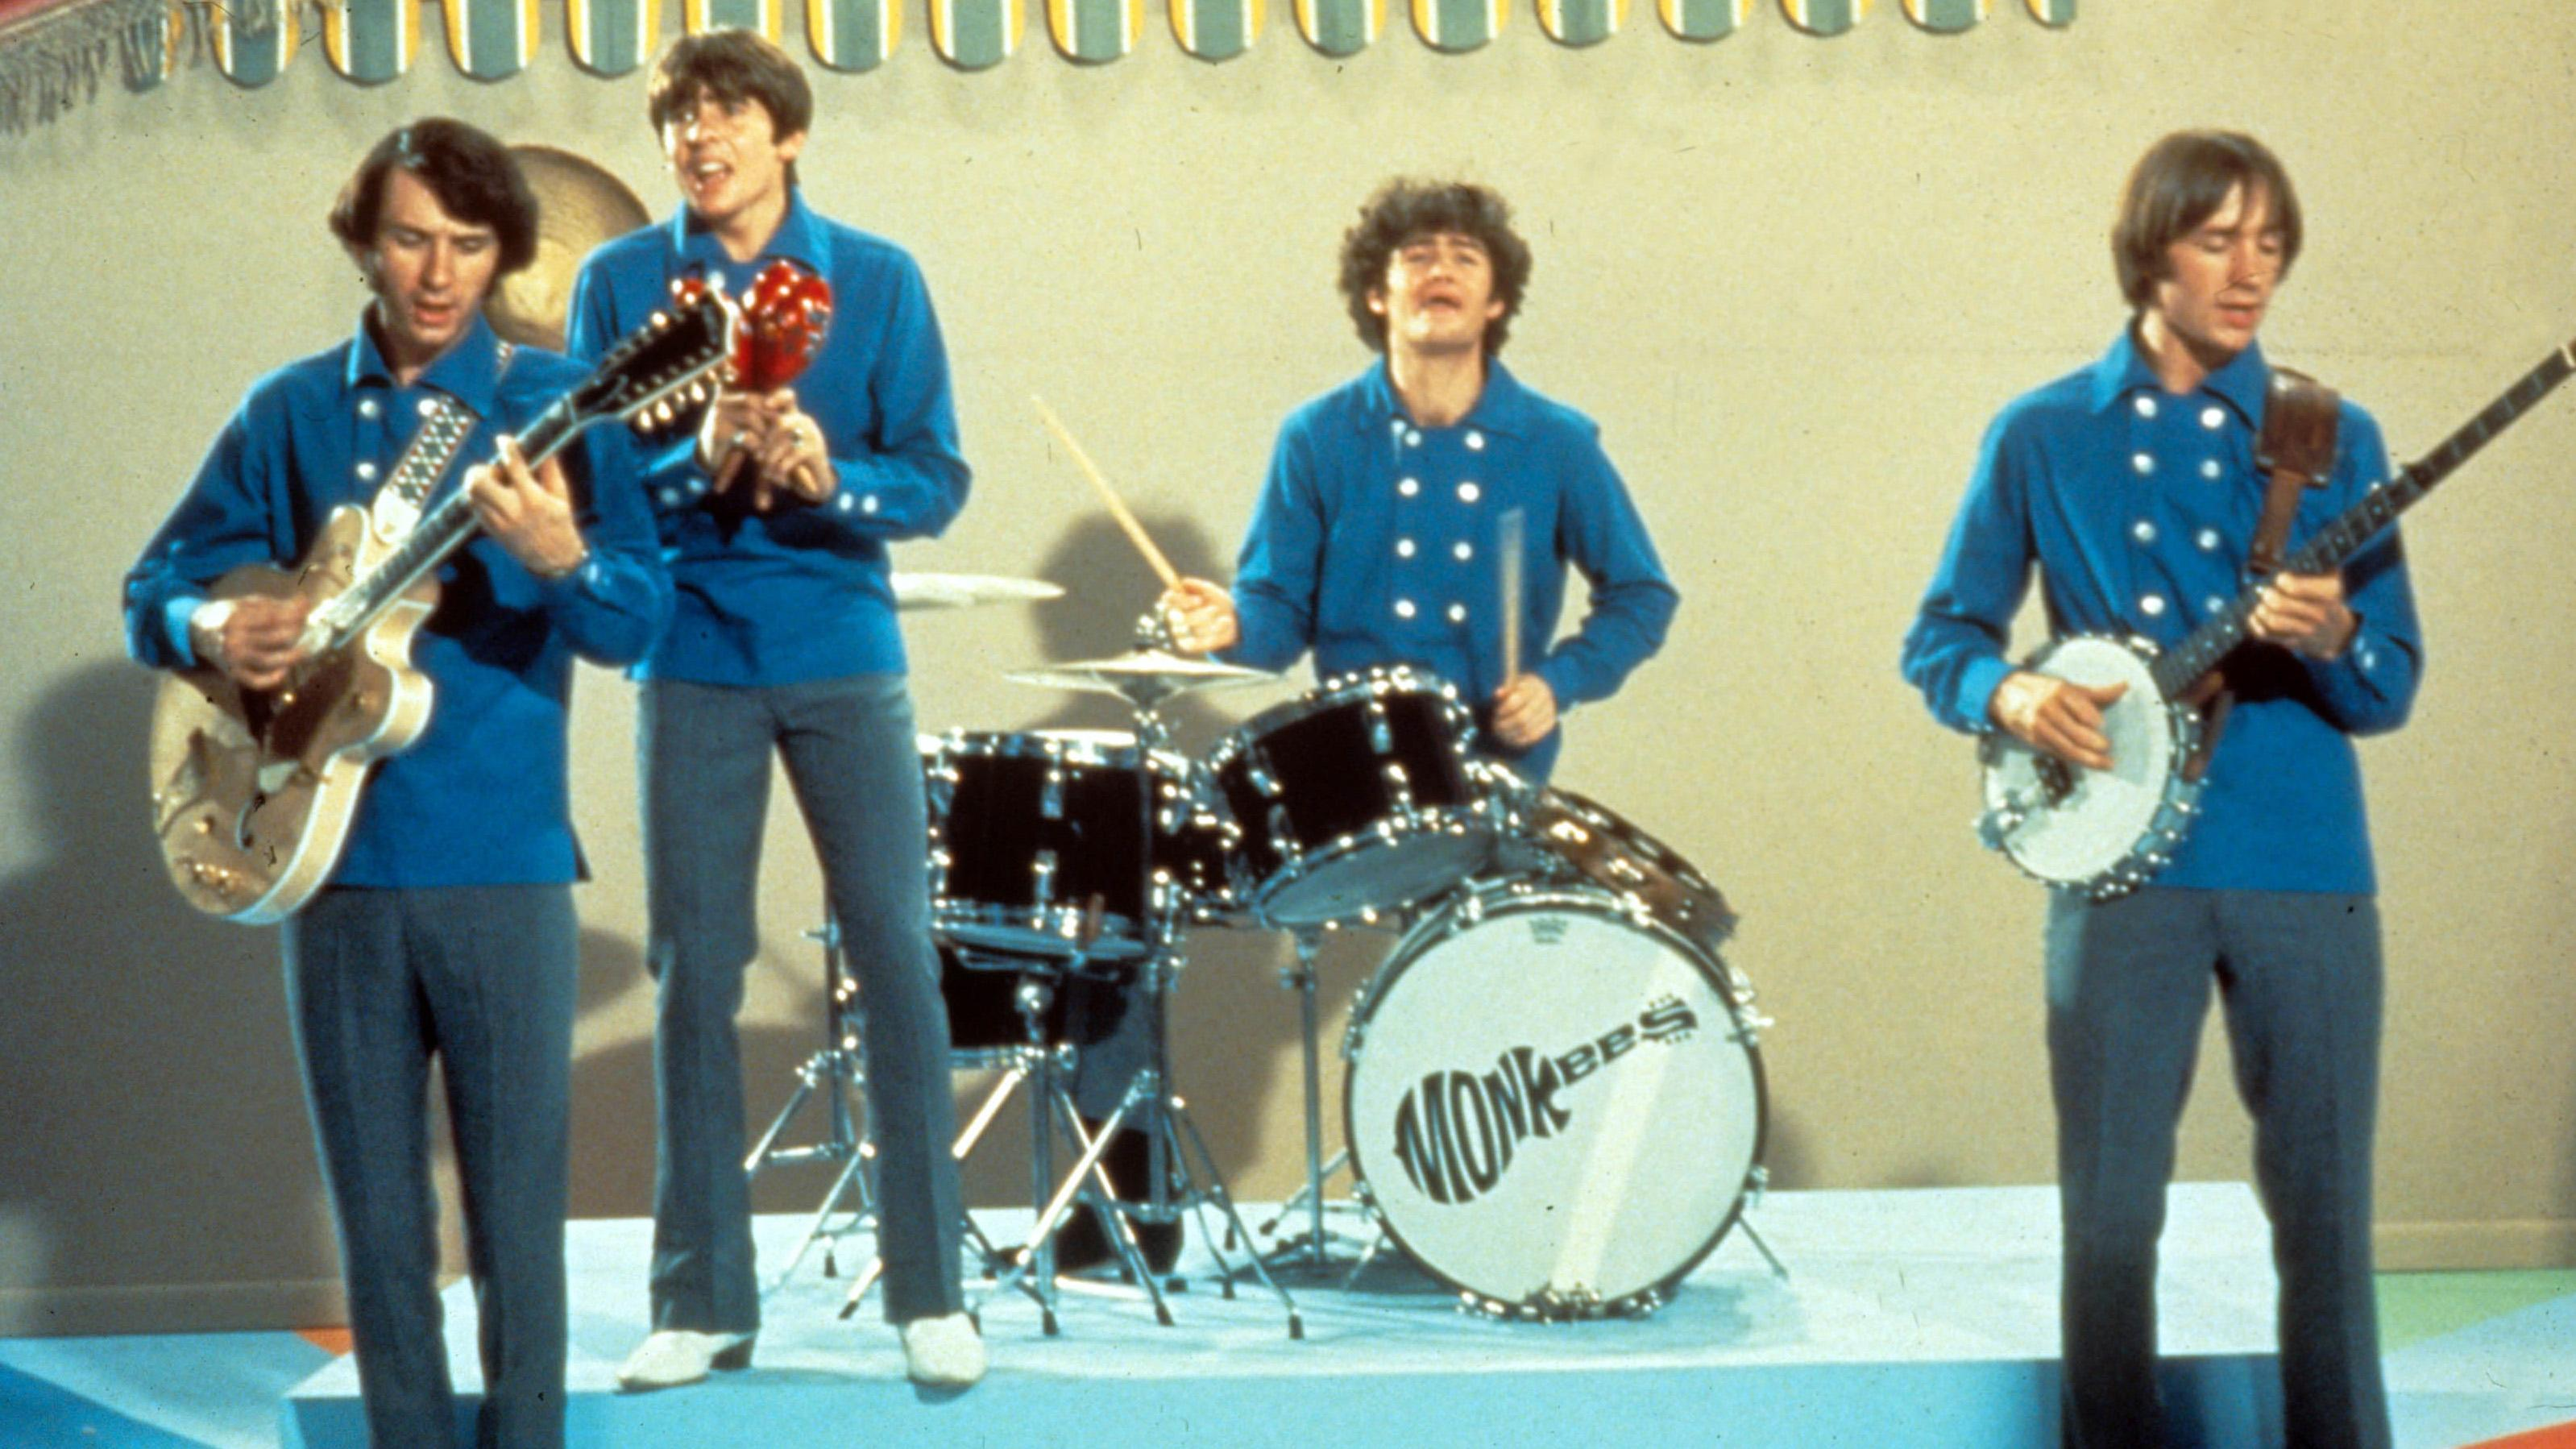 The Monkees Reunite for a New LP, Tour